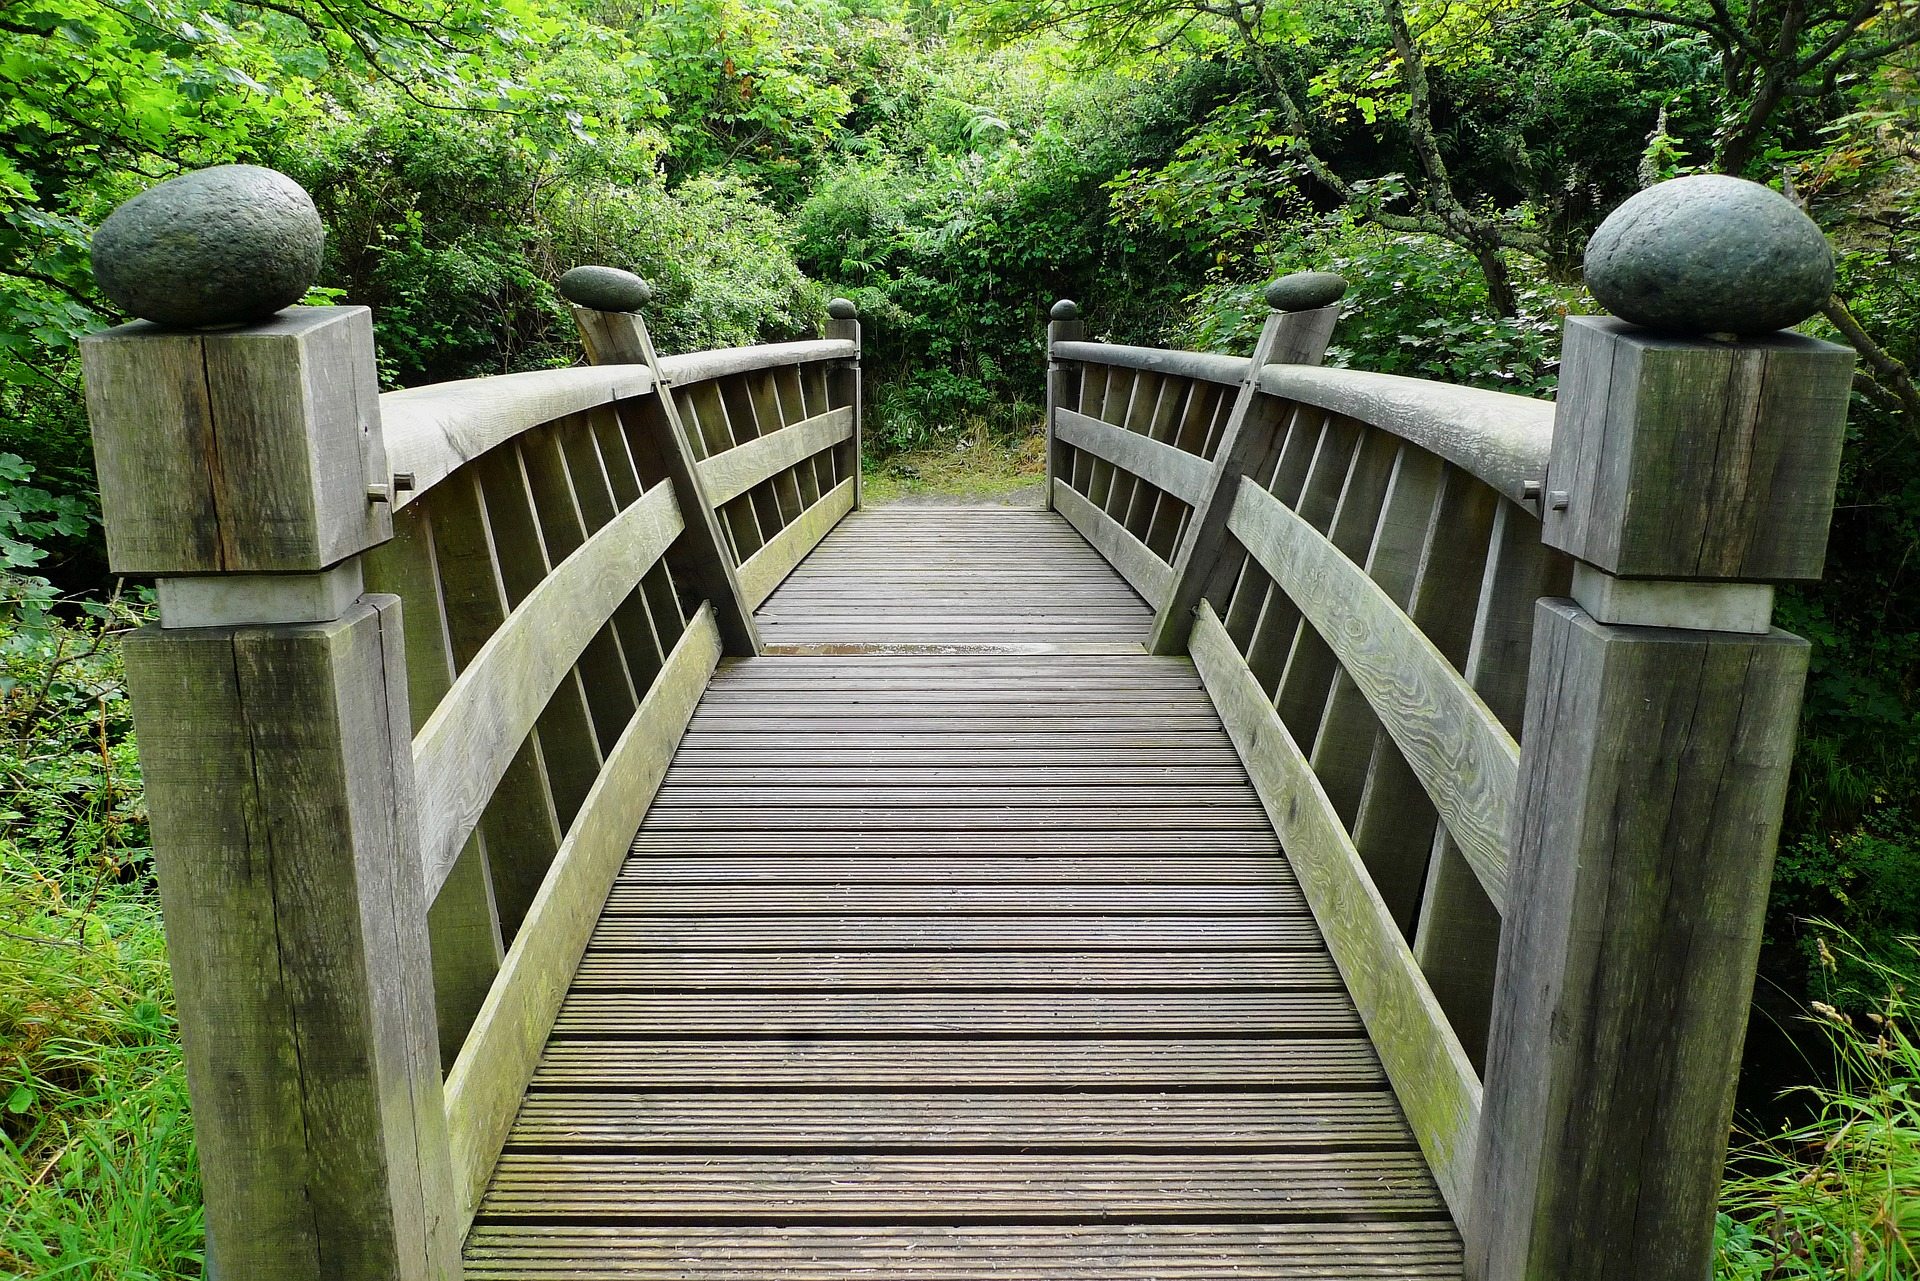 simple wooden bridge showing the start of a journey